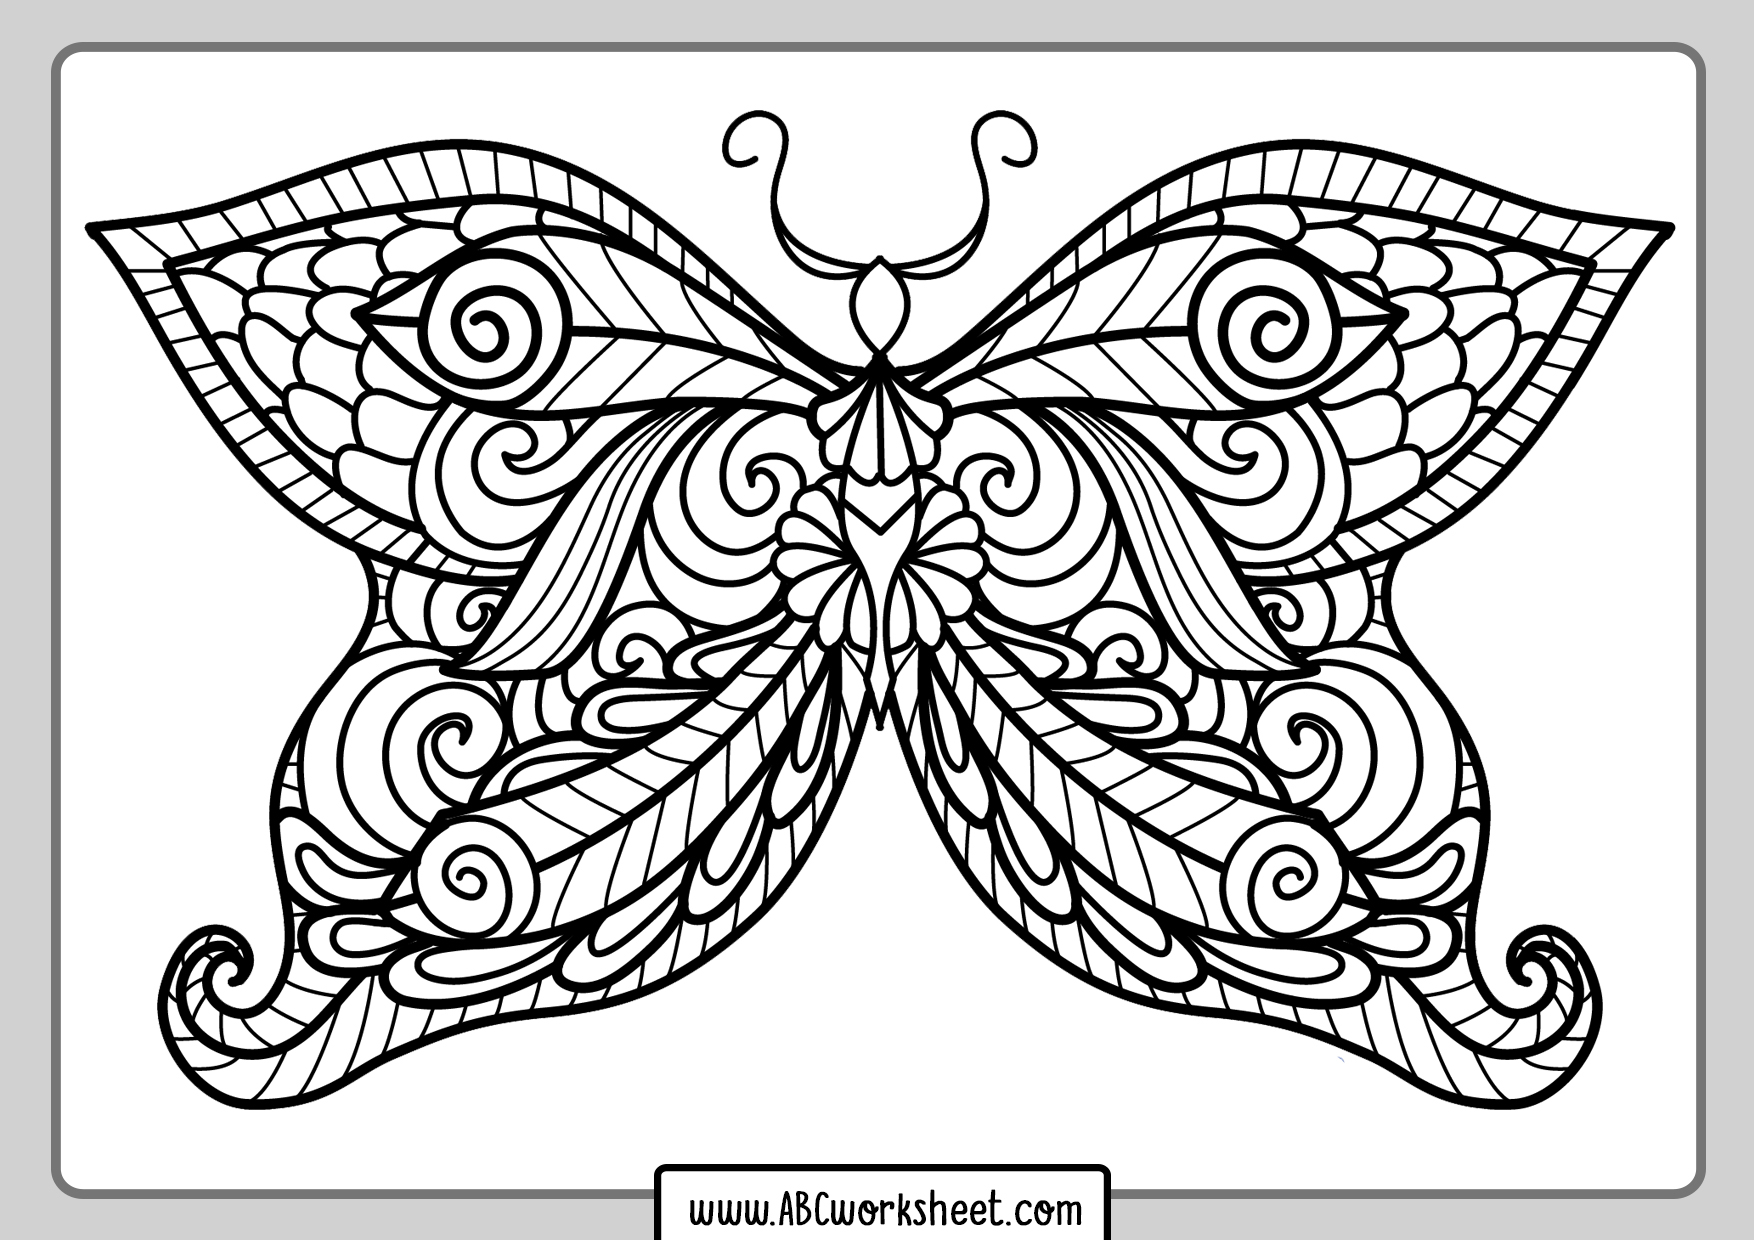 butterfly mandala coloring pages butterfly mandala coloring pages coloring butterfly mandala pages